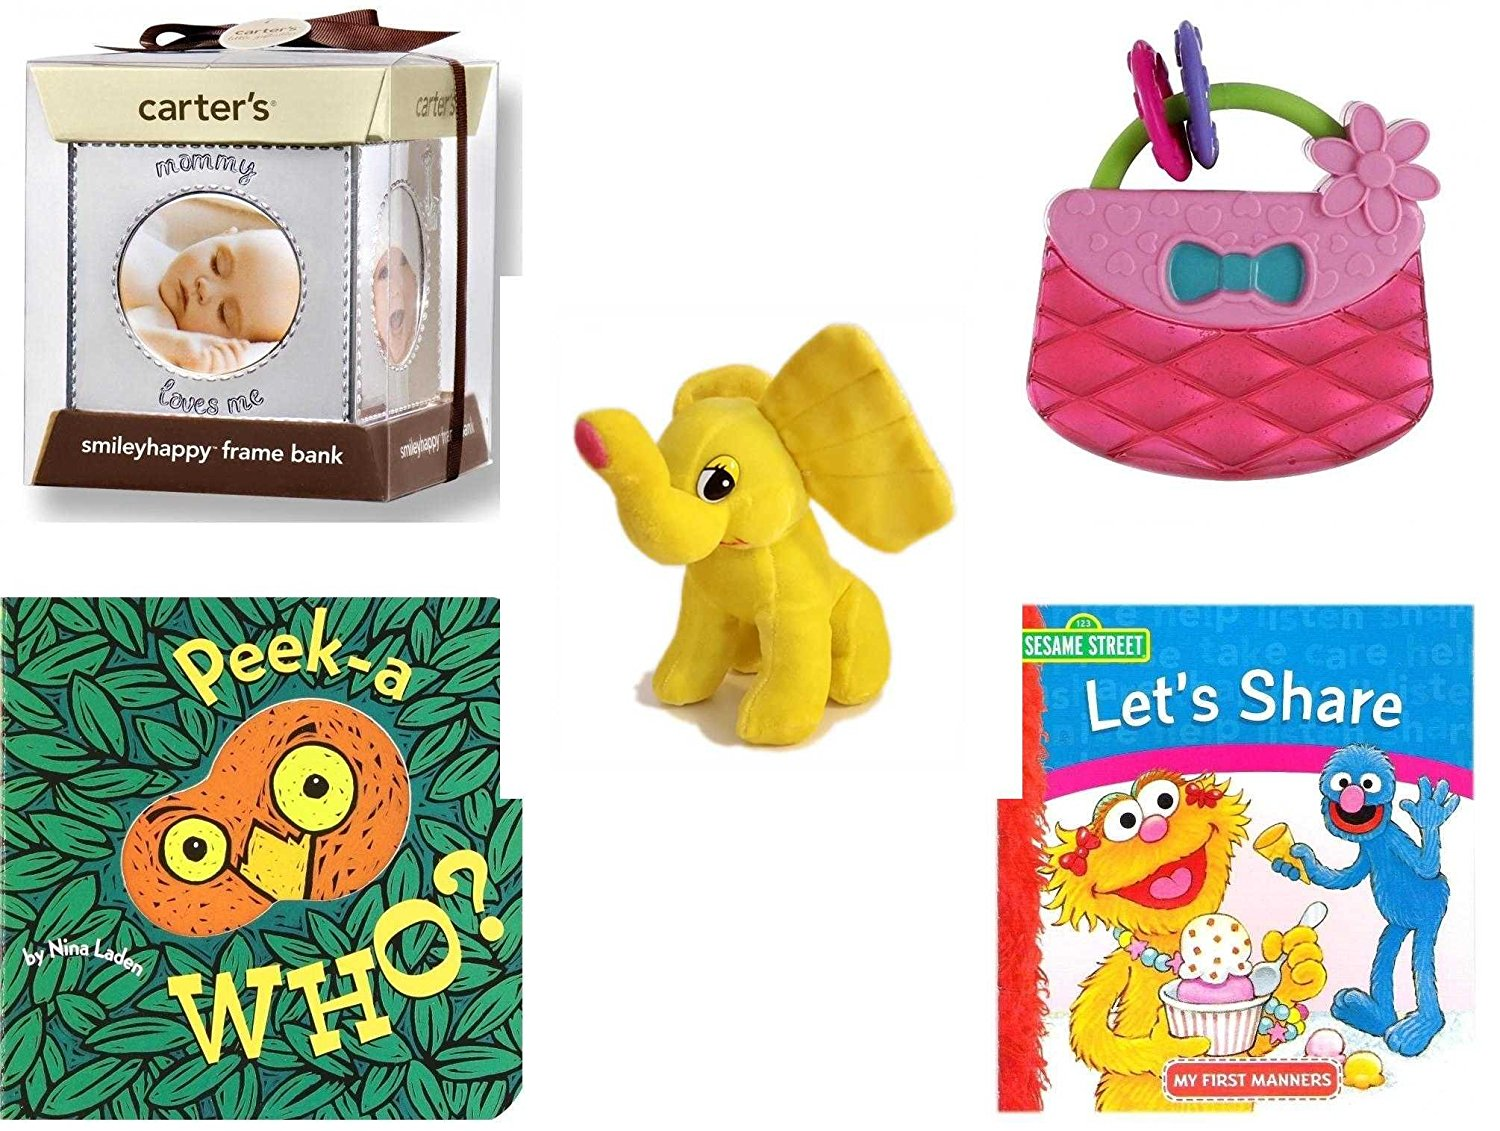 Children's Gift Bundle - Ages 0-2 [5 Piece] - Carter's Smily Happy Frame Bank, Silver - Bright Starts Pretty in Pink Carry Teethe Purse - Yellow Elephant Plush - Peek-a-WHO? Board Book - Sesame Str